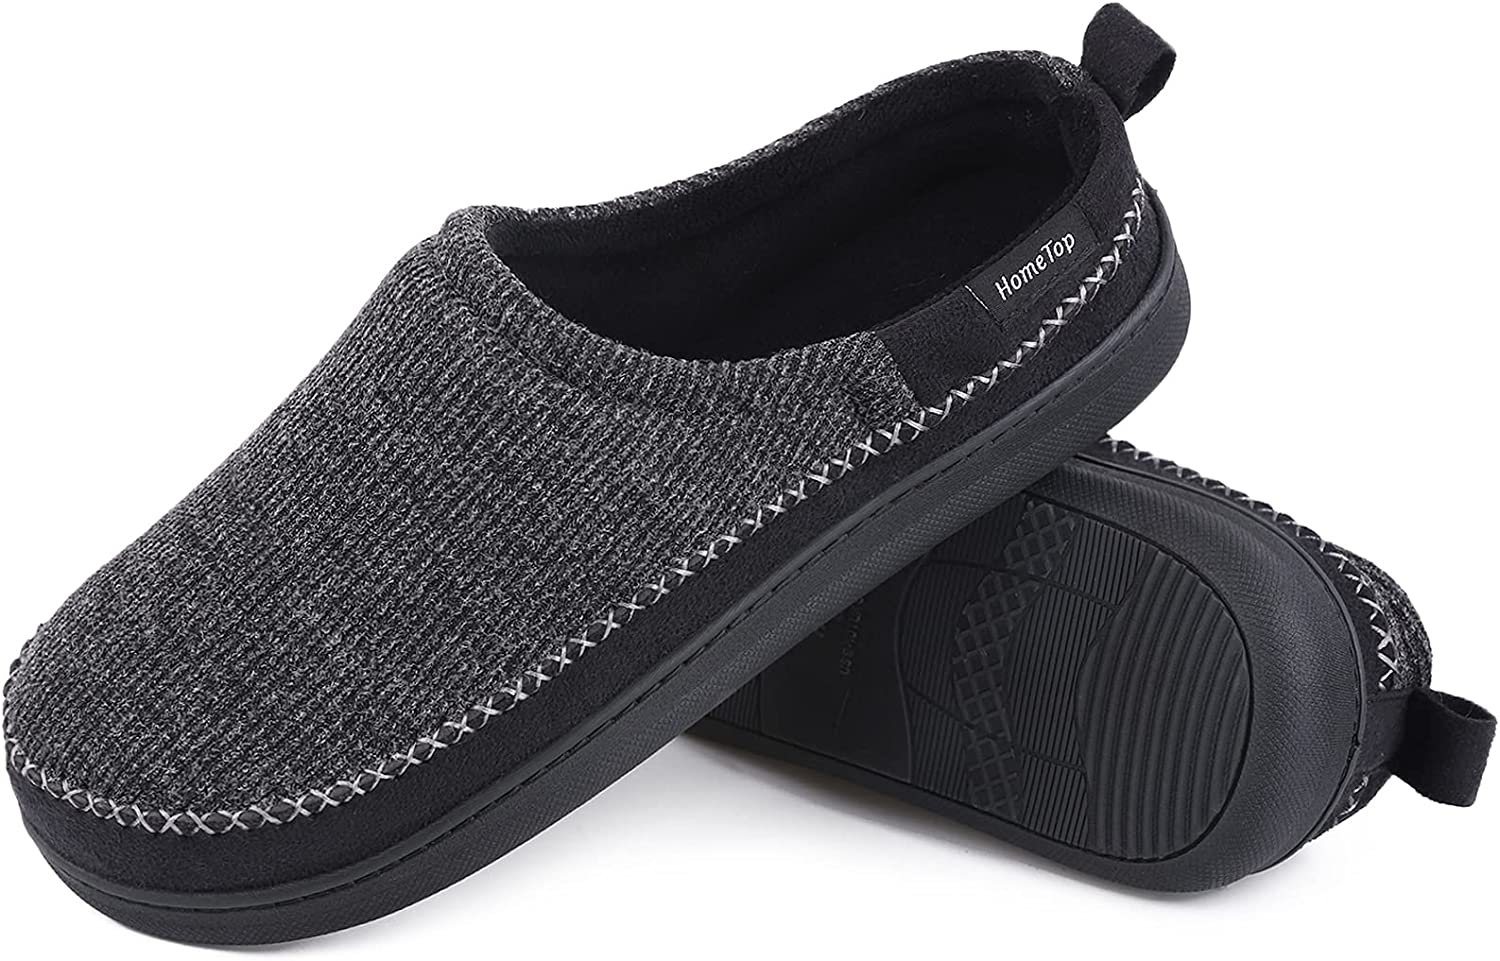 HomeTop Men's Same day Max 59% OFF shipping Comfy Cotton Knit Lined Memory Slippers with Terry